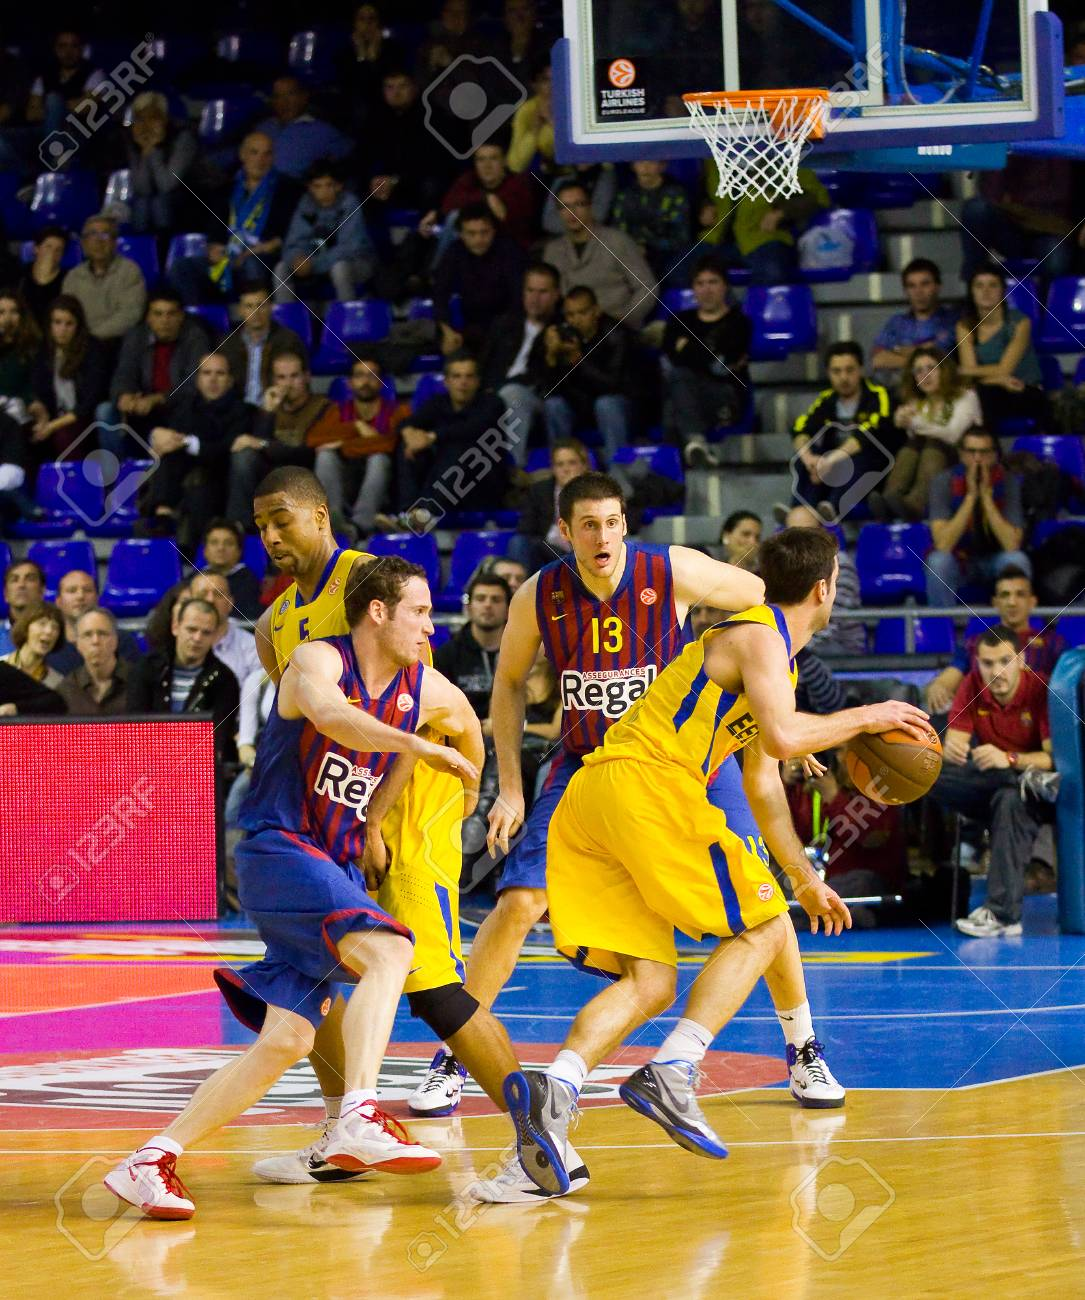 Some Players In Action At The Euroleague Basketball Match Between Stock Photo Picture And Royalty Free Image Image 25476208